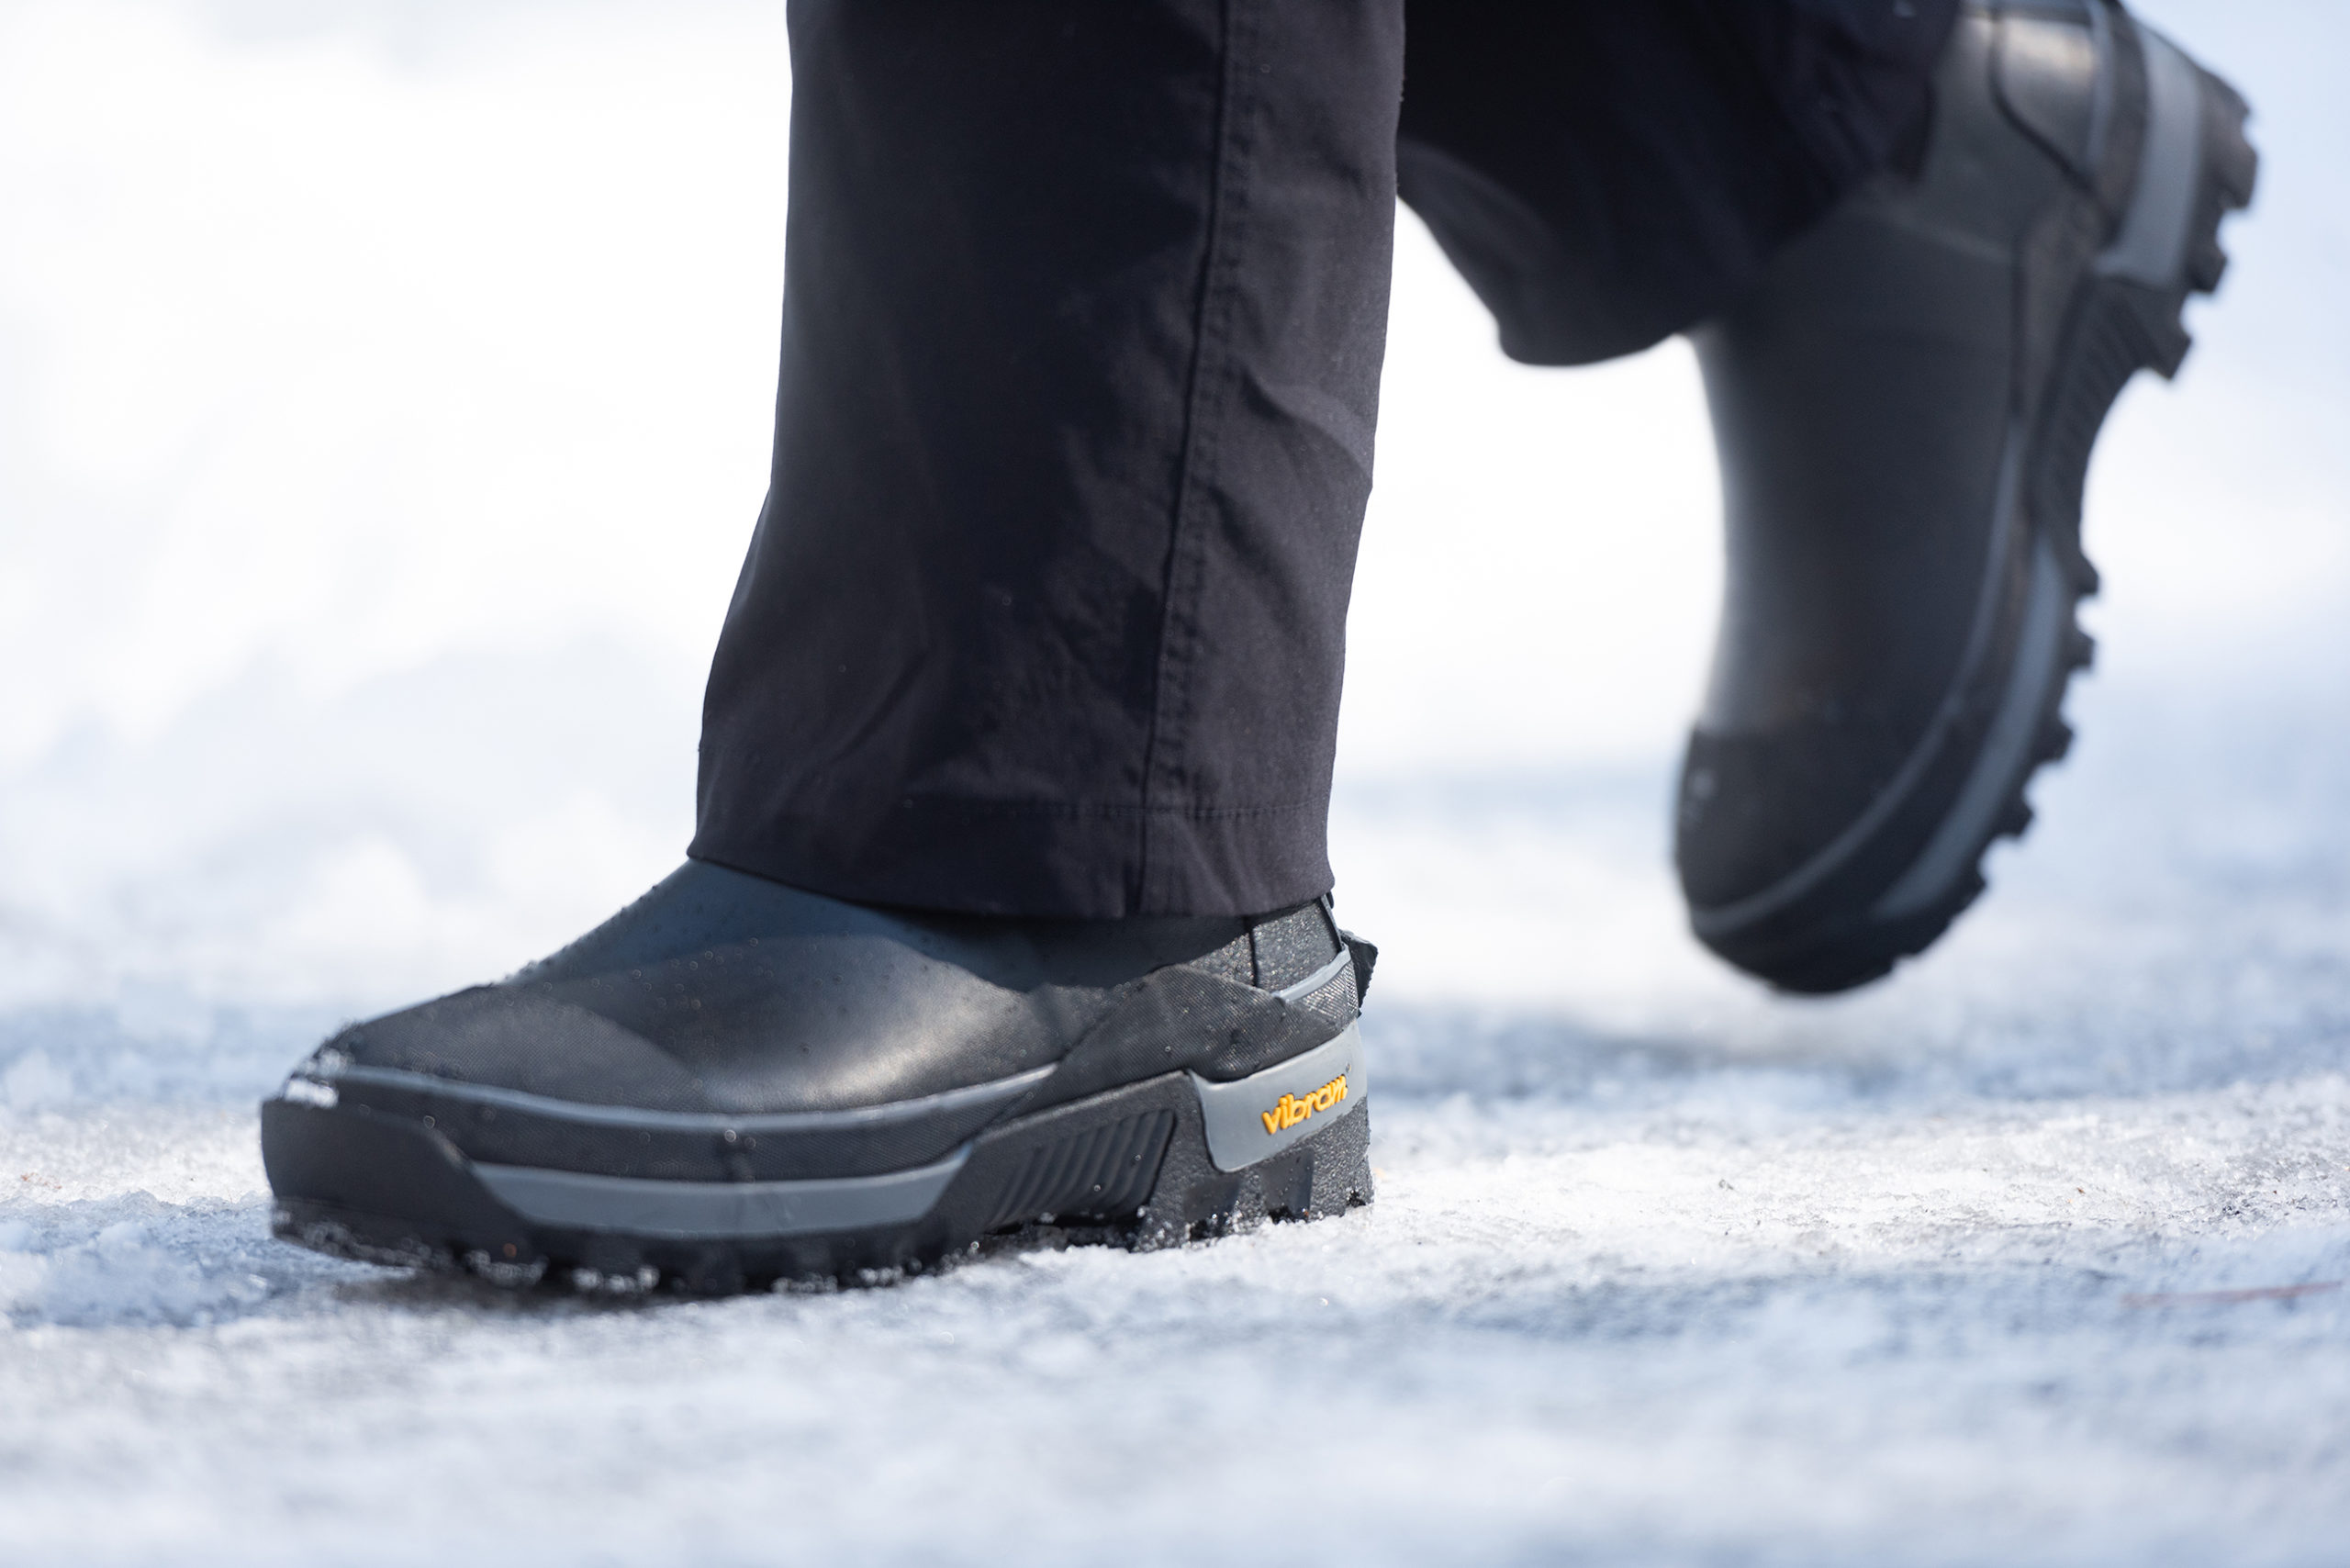 Men's cold weather boot in snow